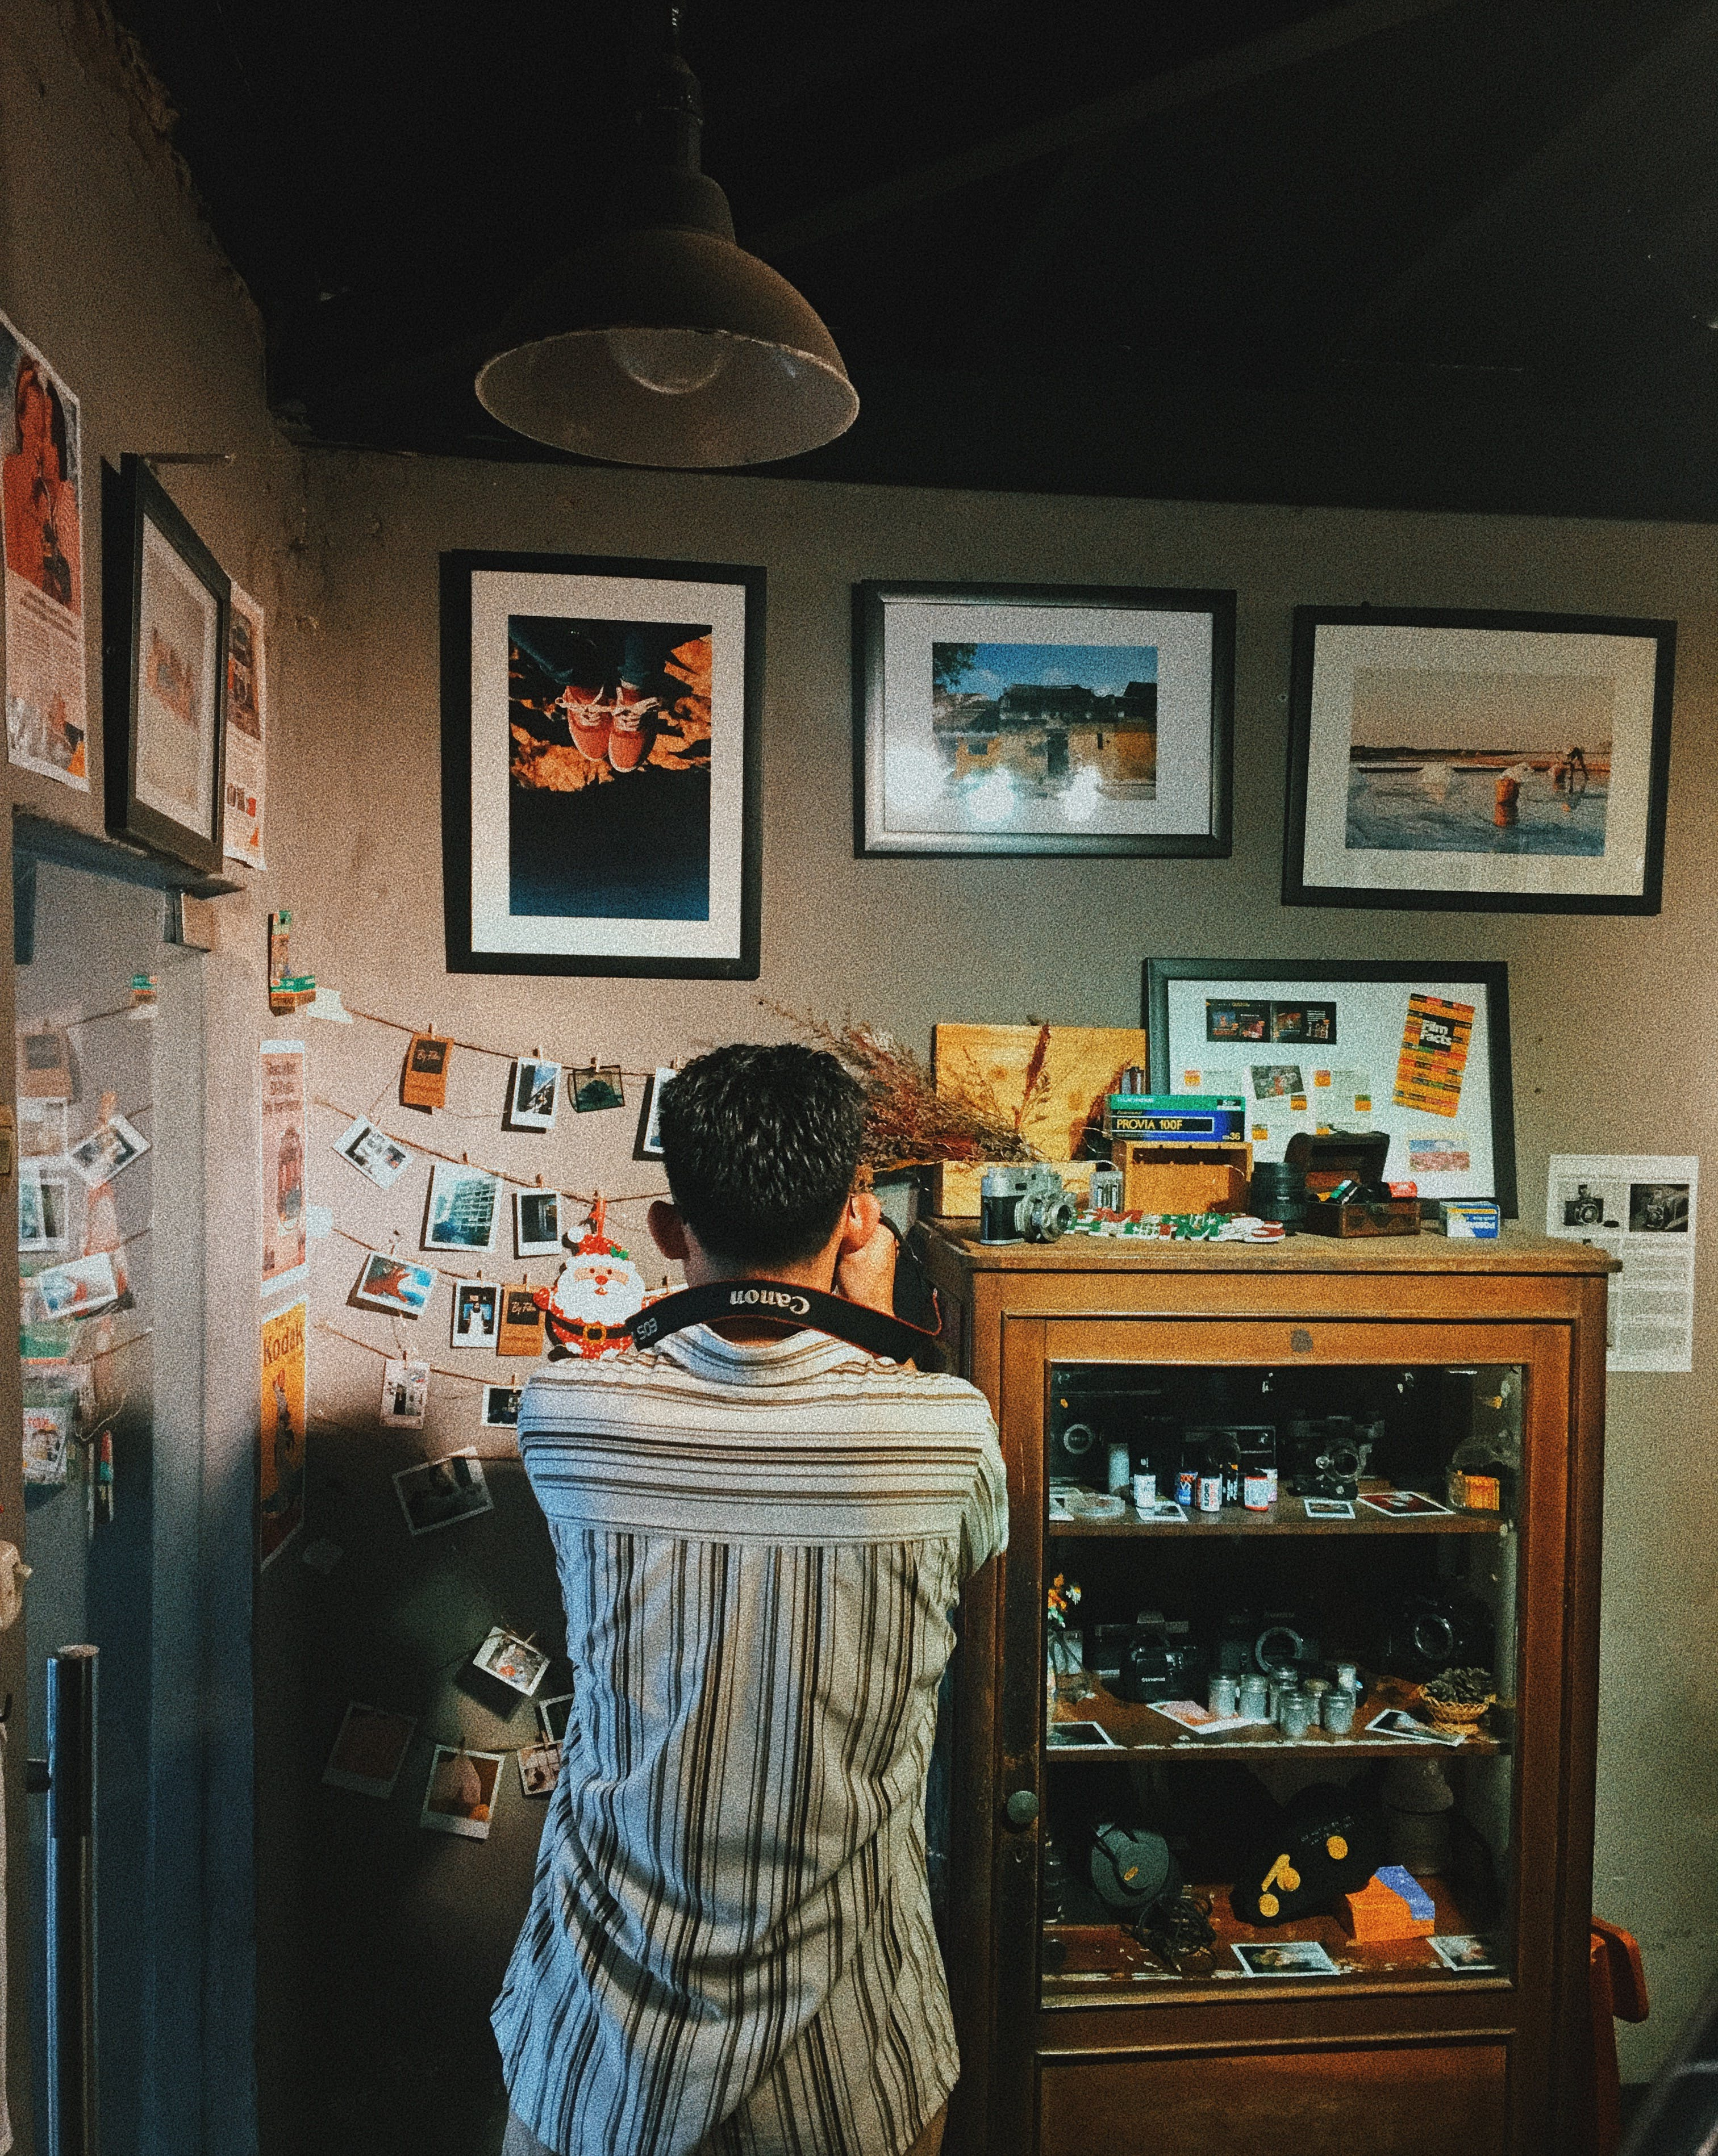 Man Taking Photos of a Wall full of photographs